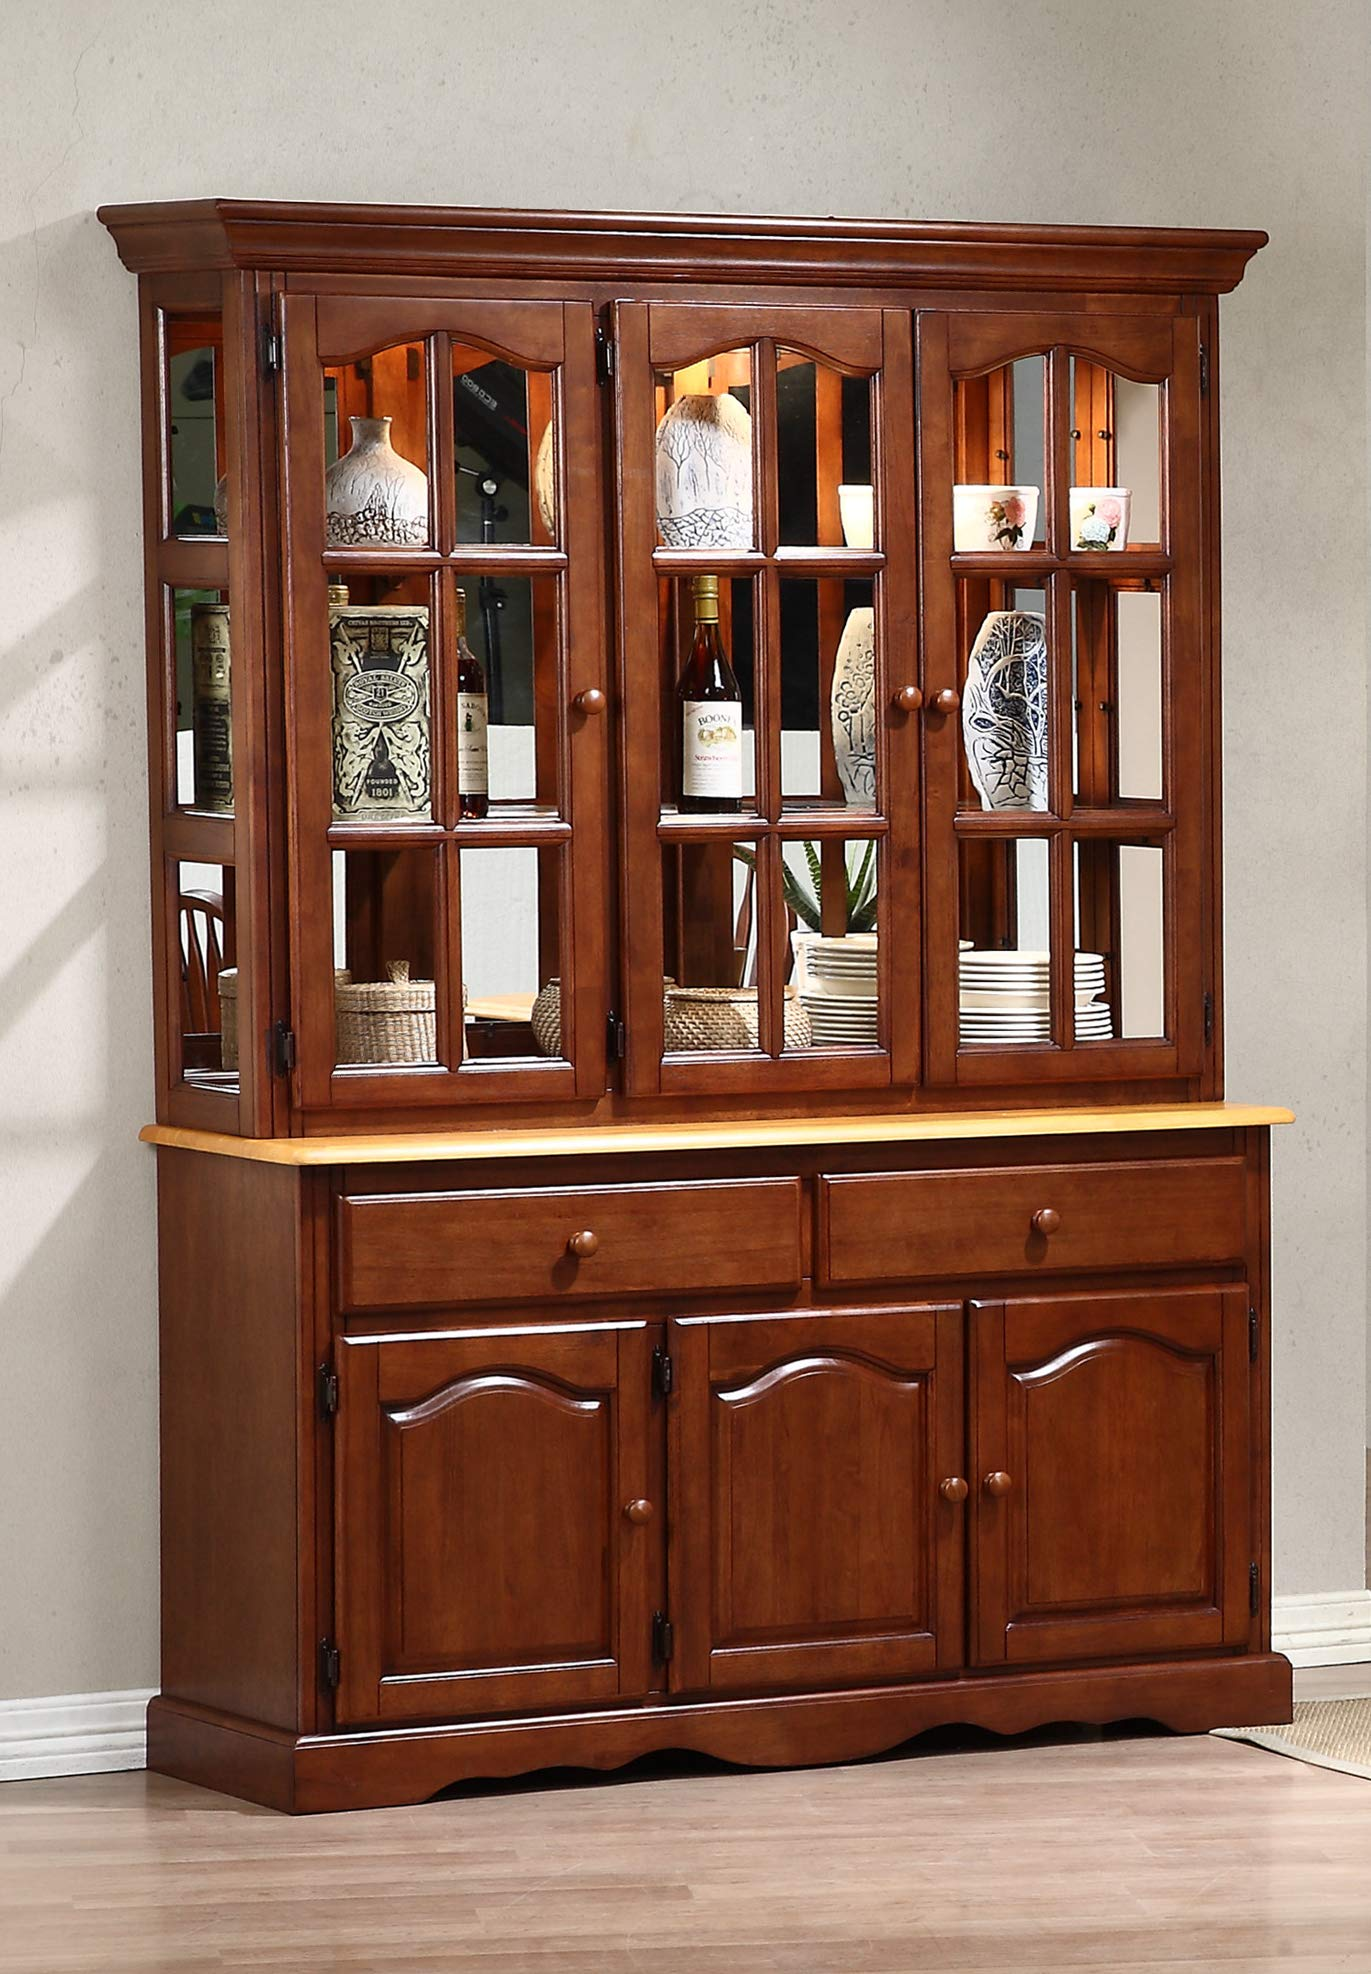 Sunset Trading Oak Selections Buffet and Hutch, Medium Walnut with Light Finish top by Sunset Trading